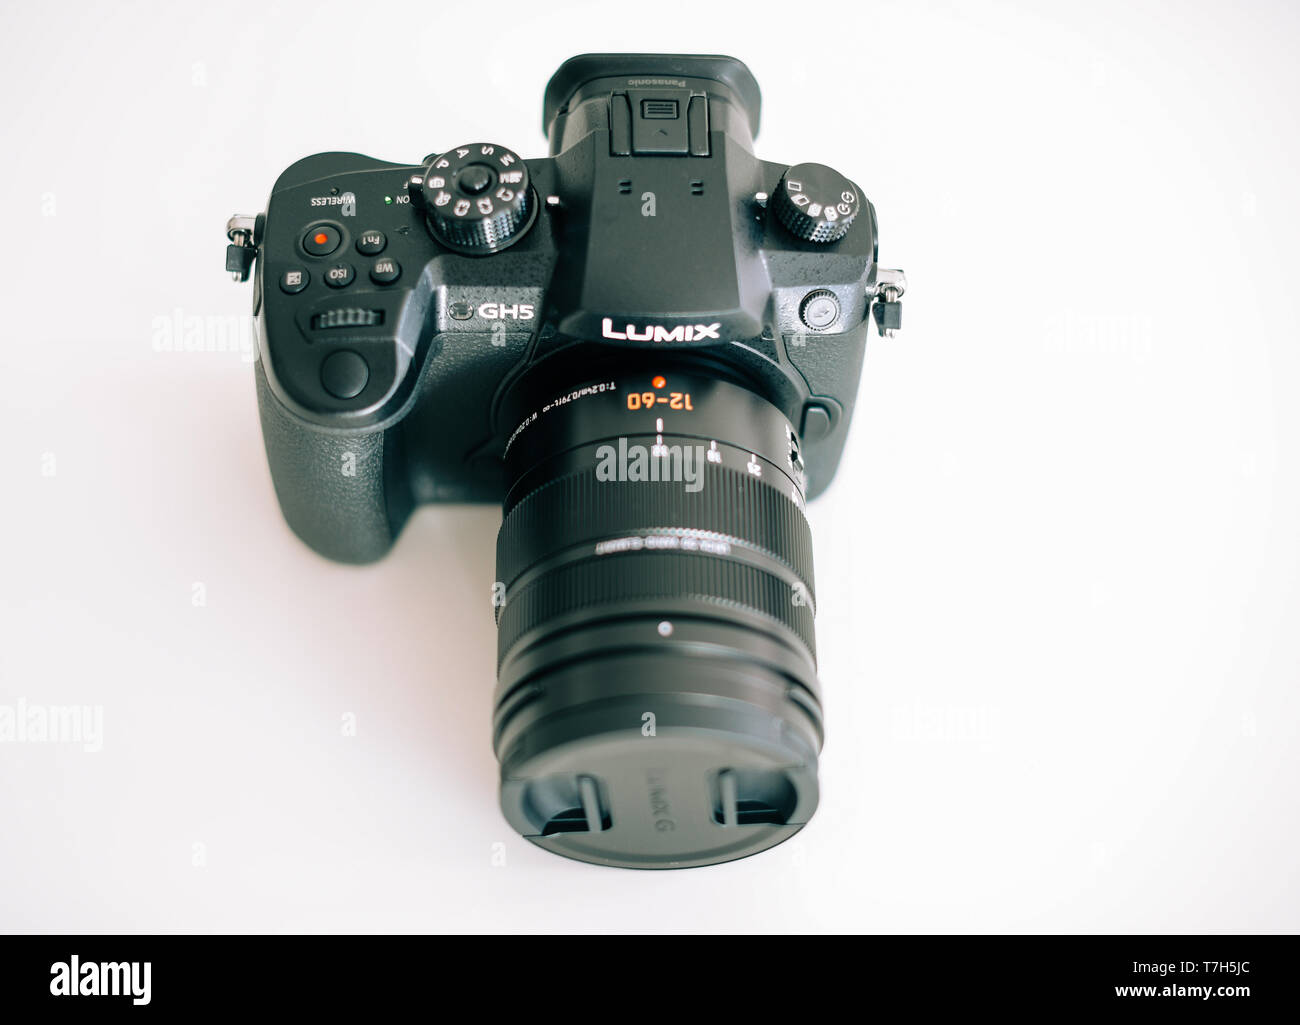 Panasonic Lumix Stock Photos & Panasonic Lumix Stock Images